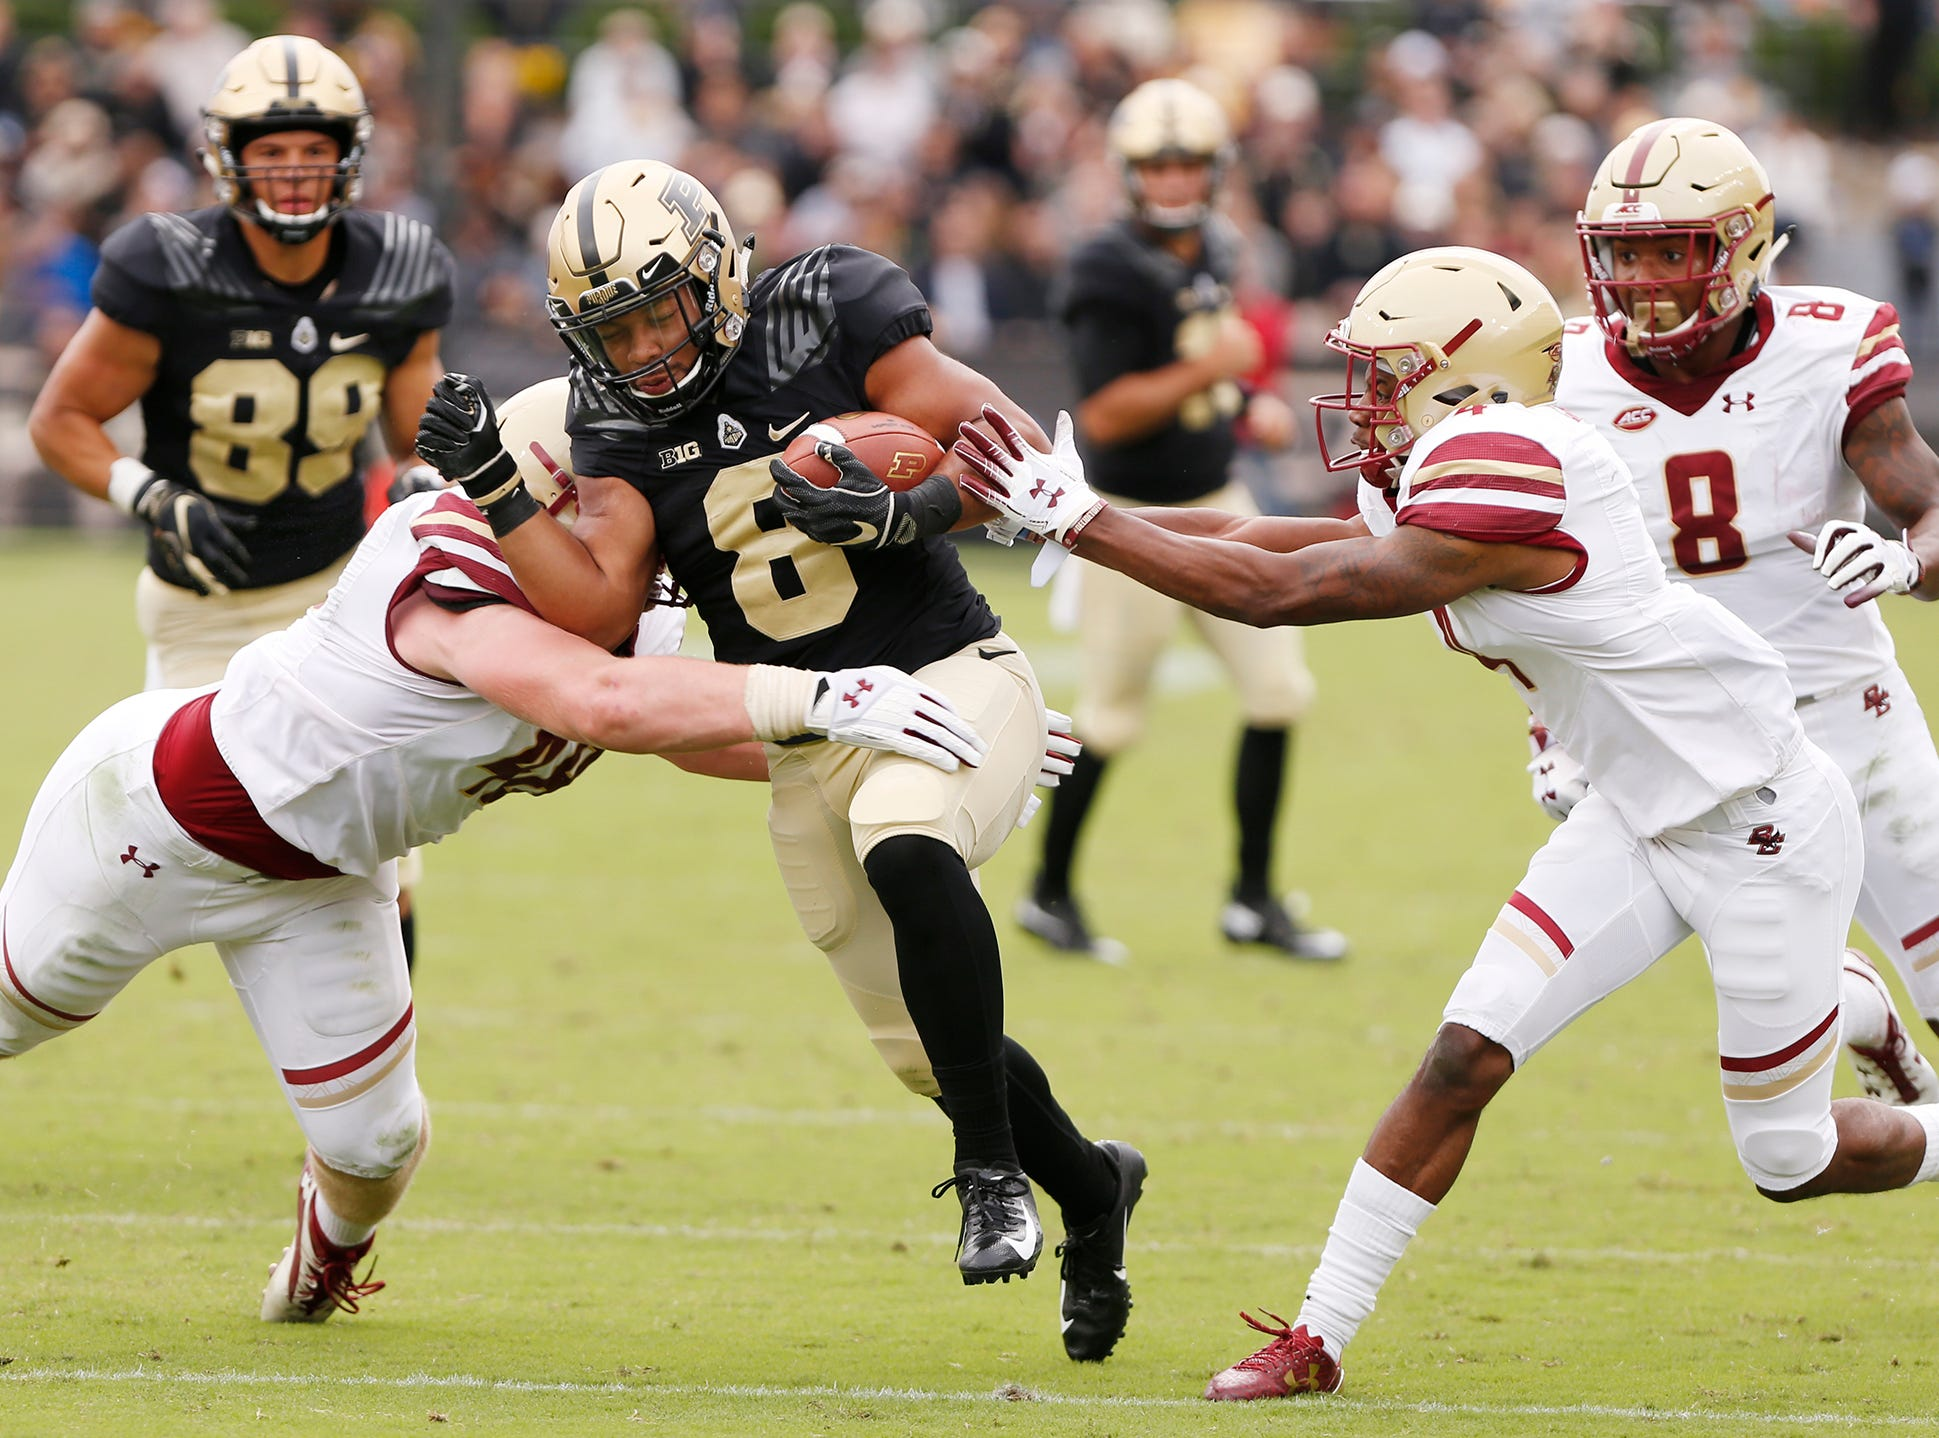 Markell Jones of Purdue on a first half carry against Boston College Saturday, September 22, 2018, in Ross-Ade Stadium.